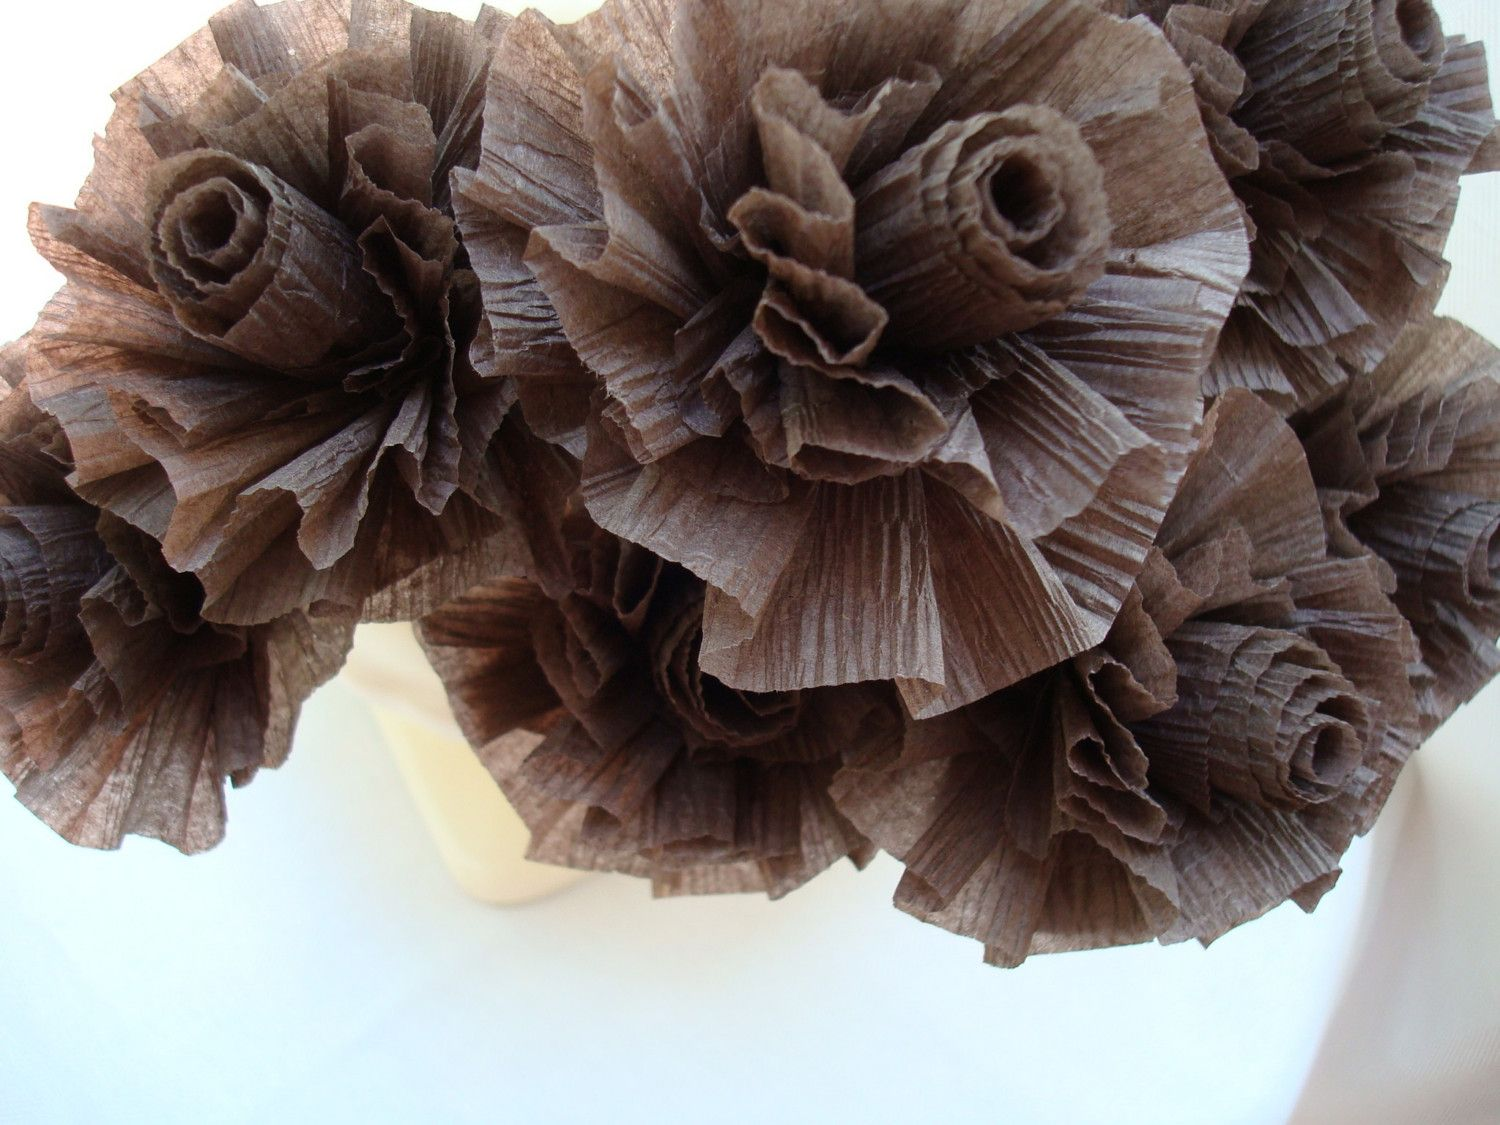 7 Chocolate Brown Wedding Crepe Paper Roses...ART DECO STYLIZED FLOWERS